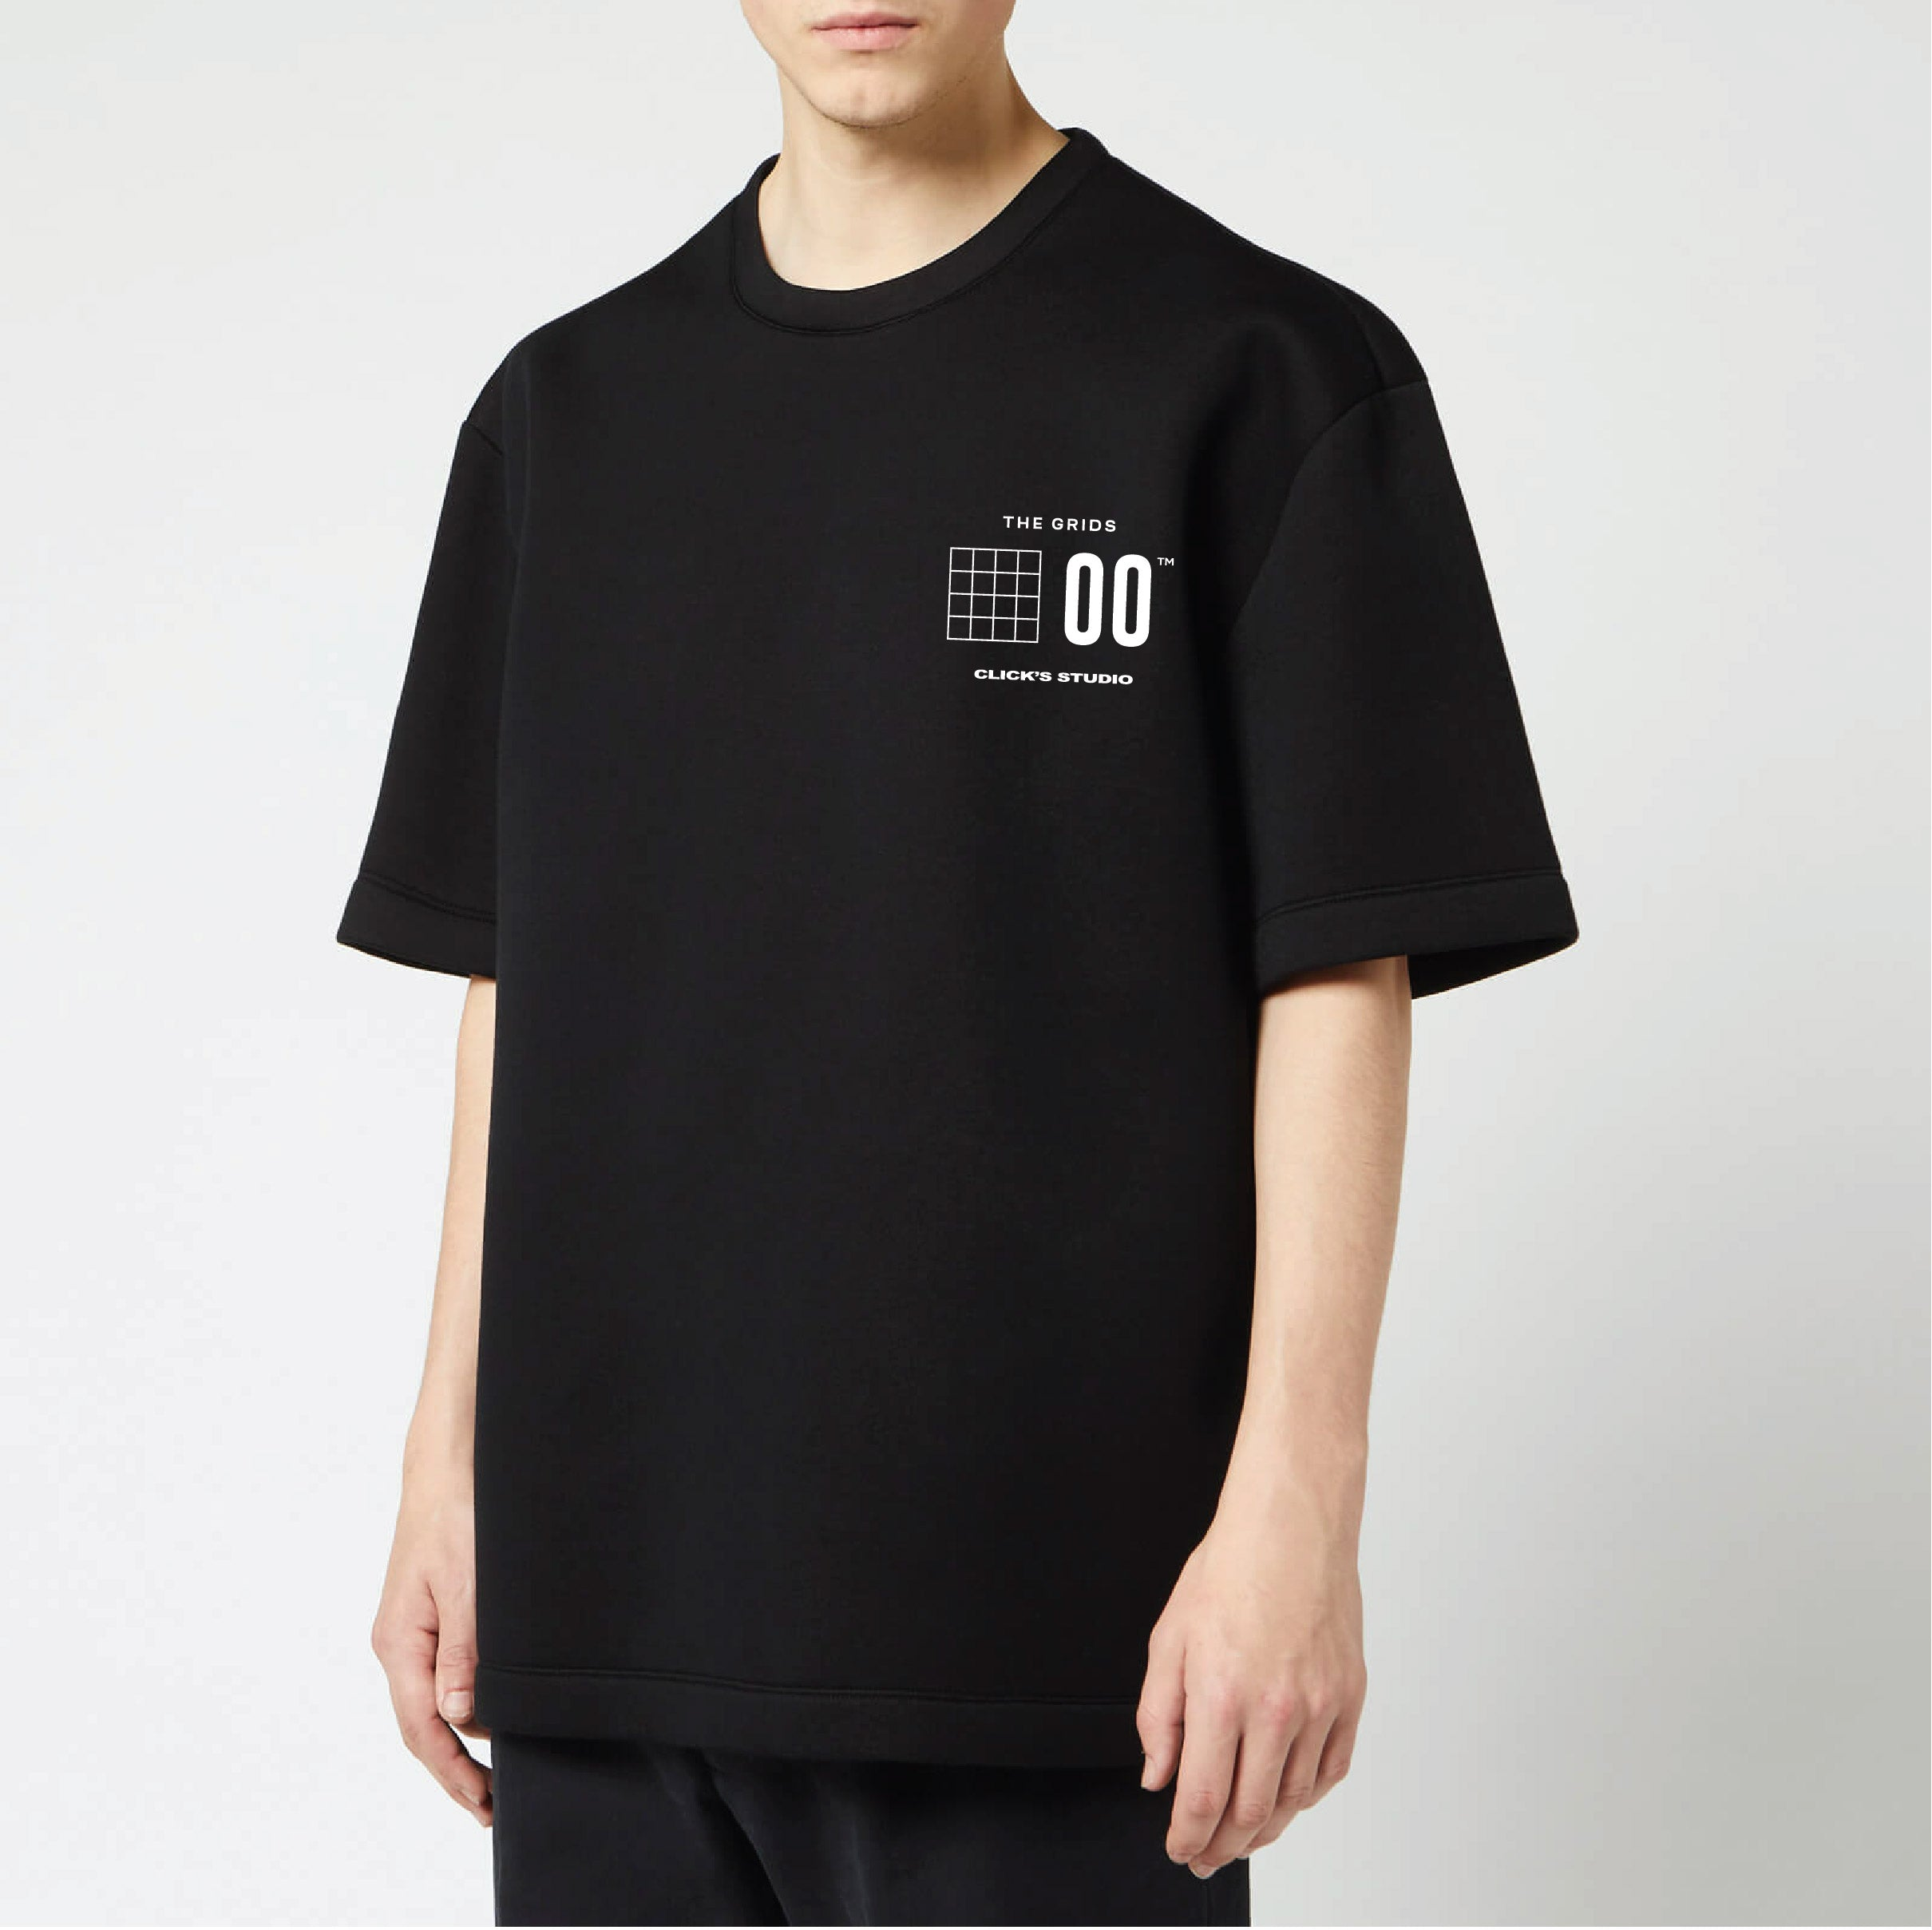 The Grids Tee by Click's